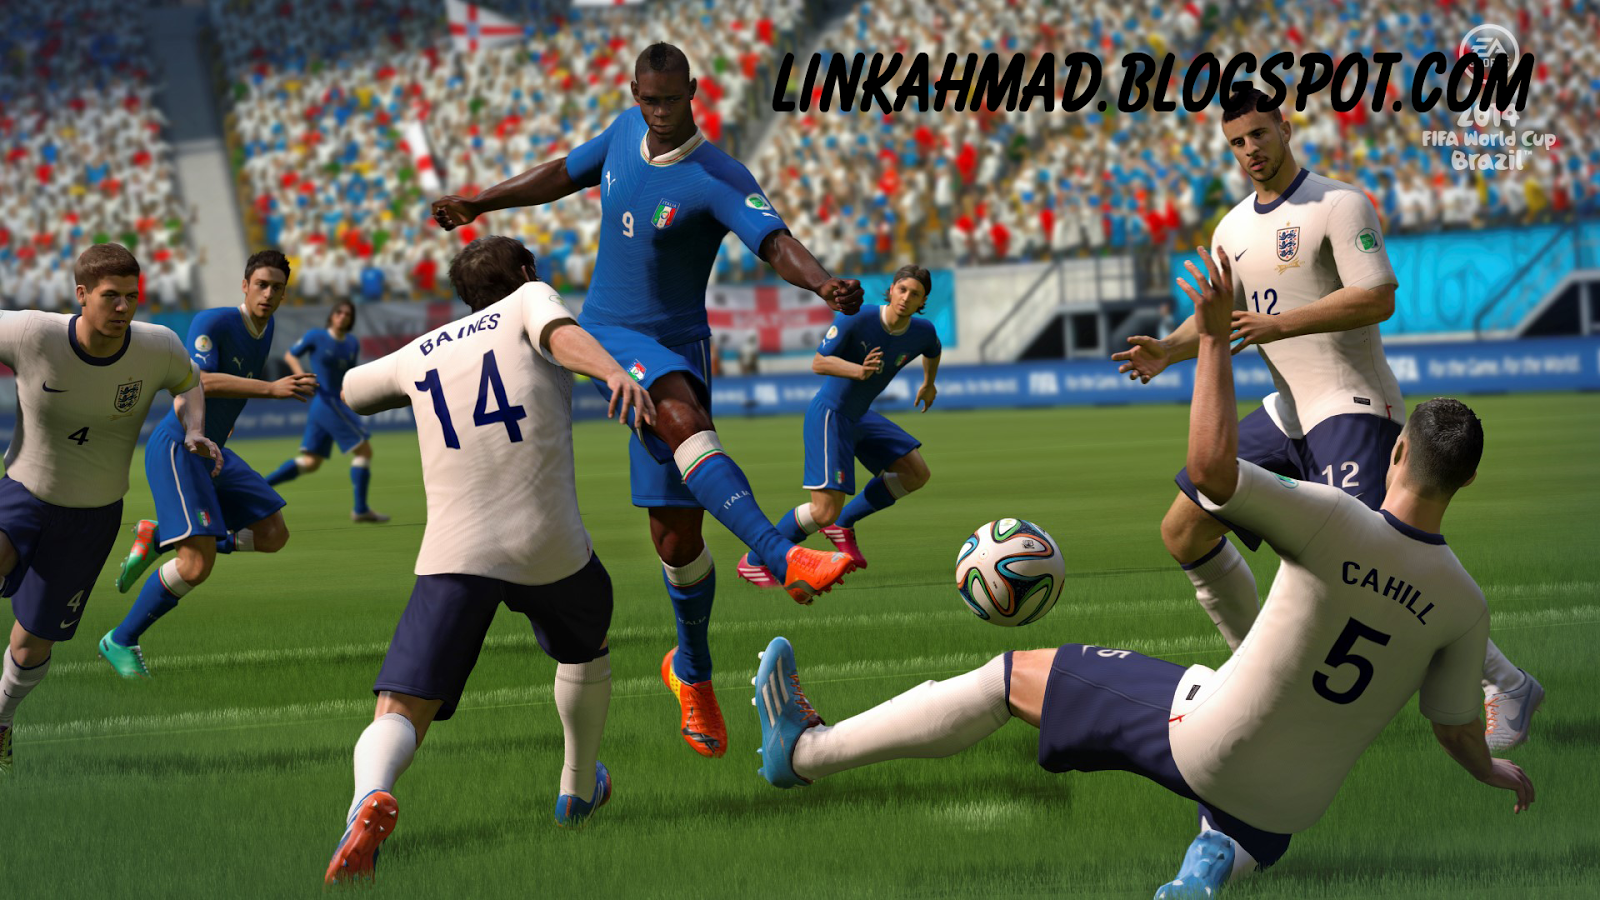 Download fifa 2014 for free (Windows)